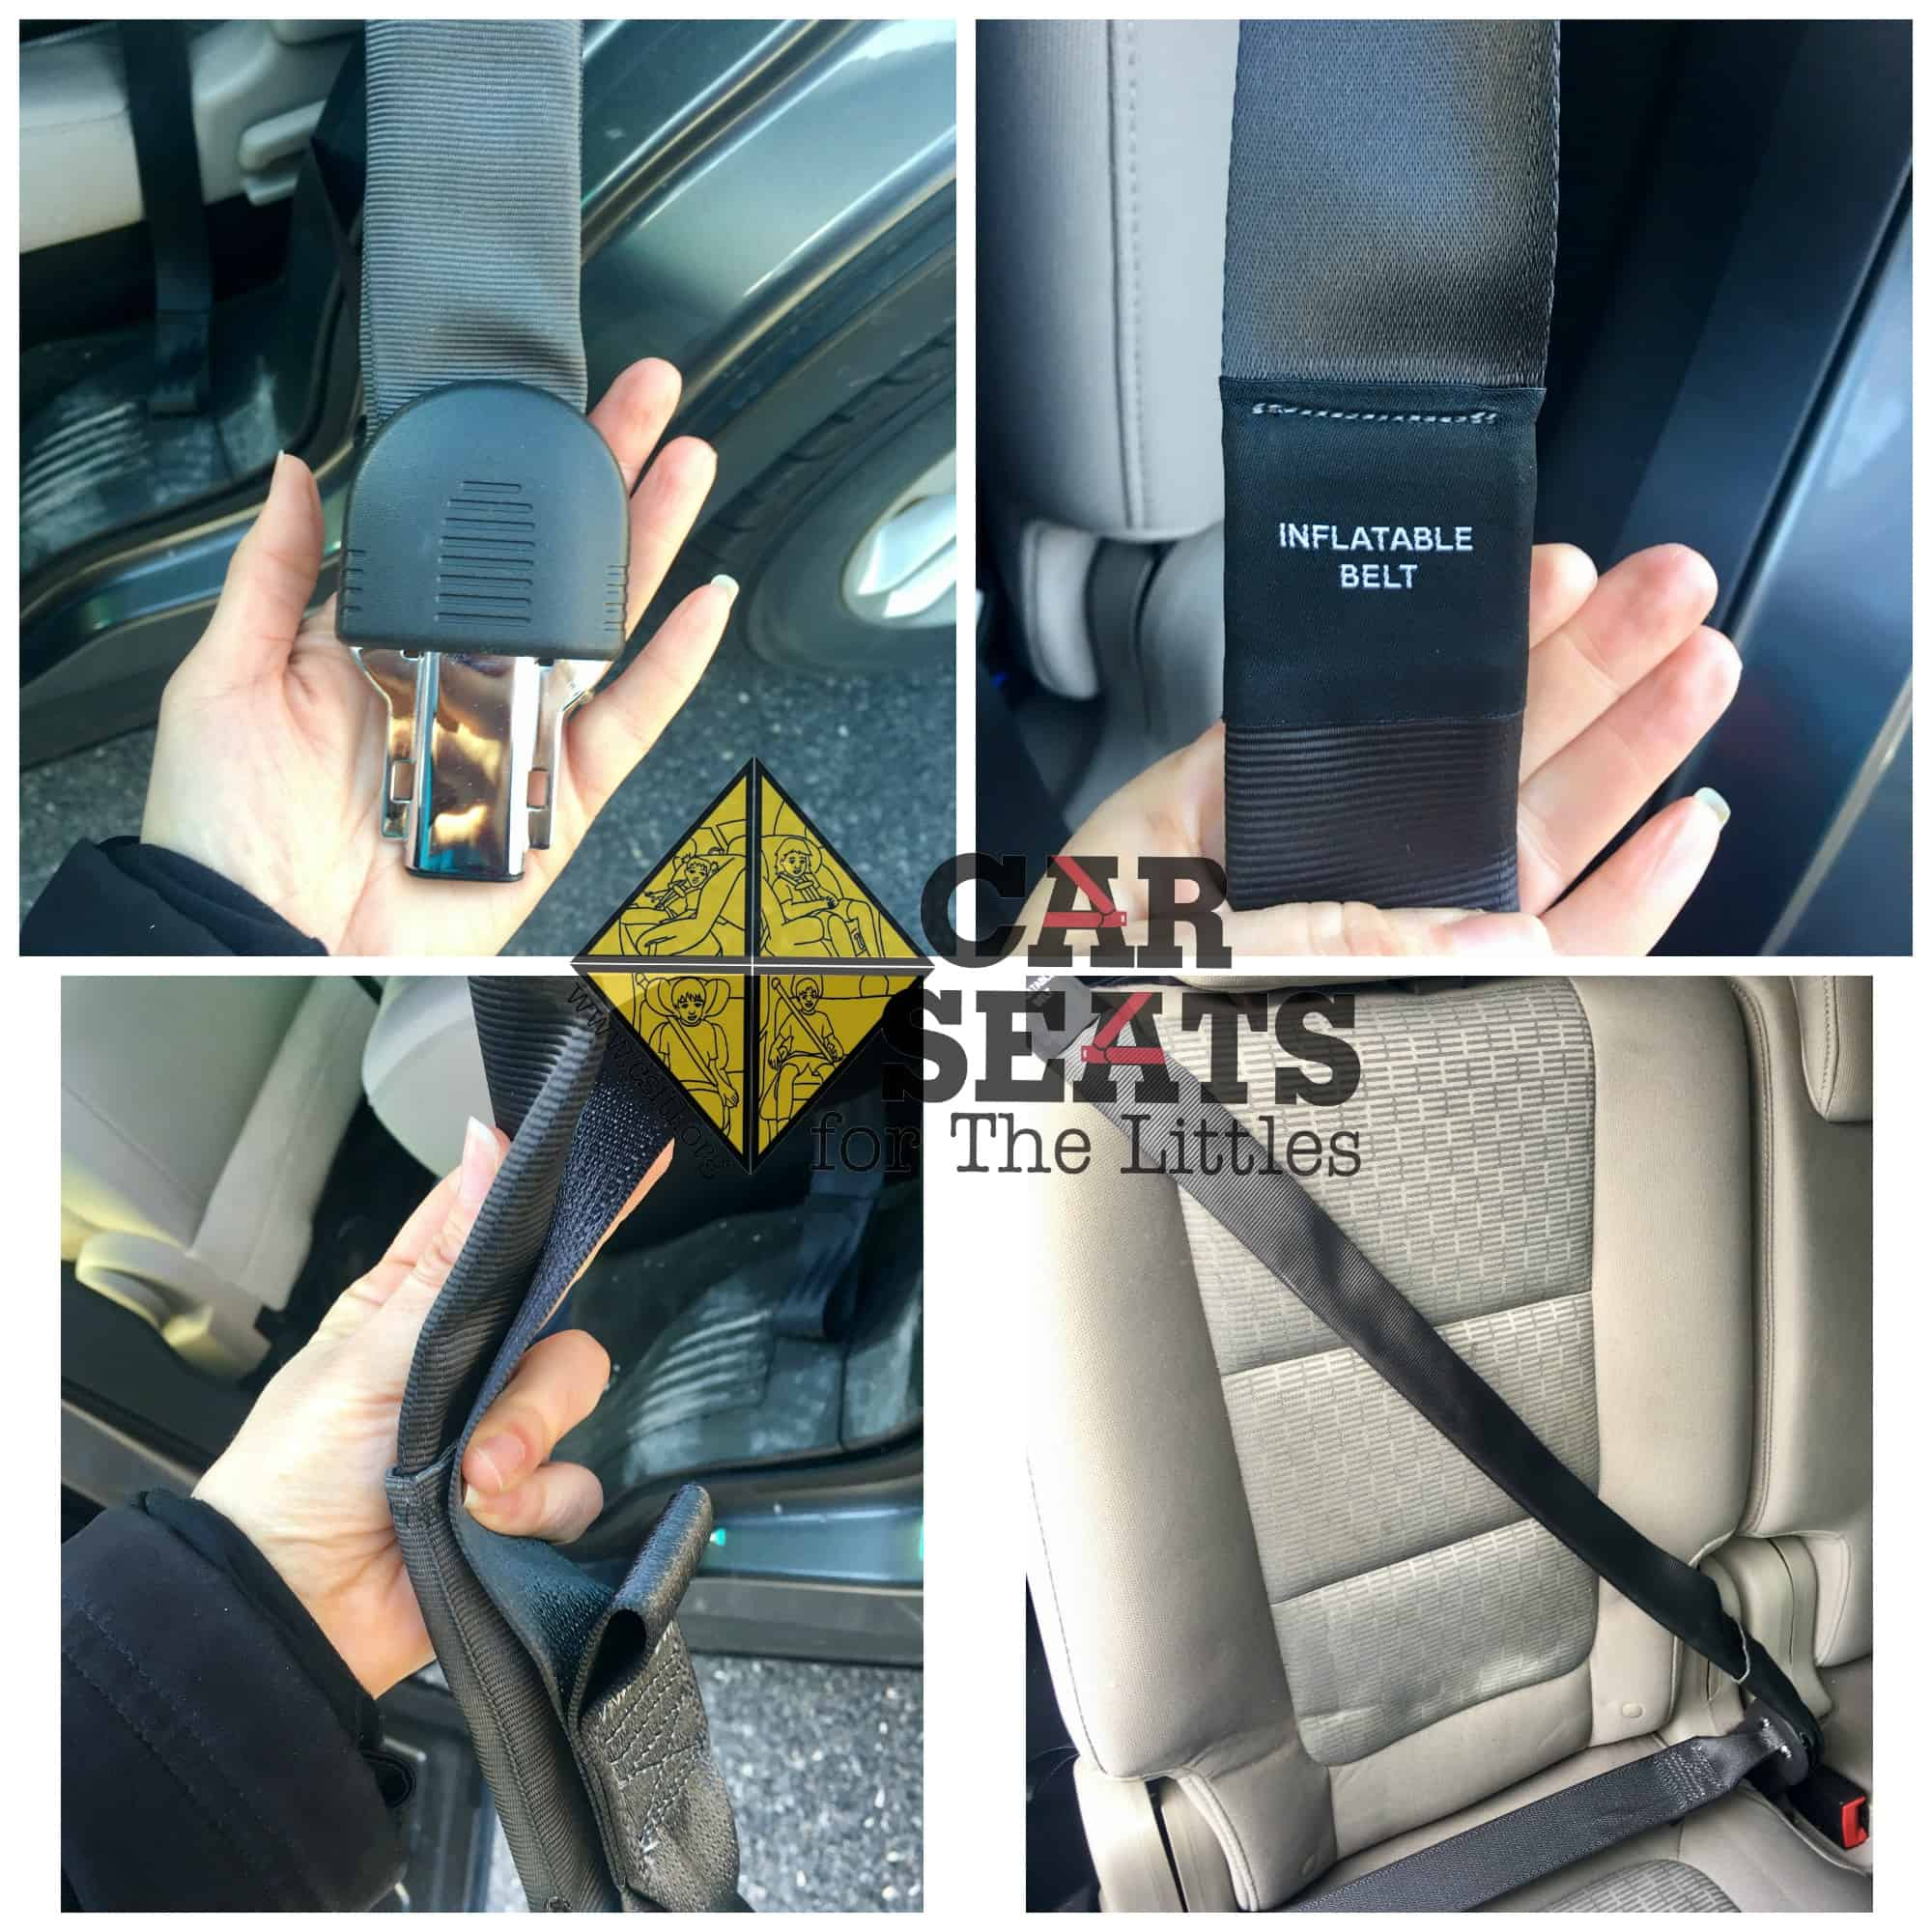 Inflatable Seat Belts and Car Seats - Car Seats For The Littles